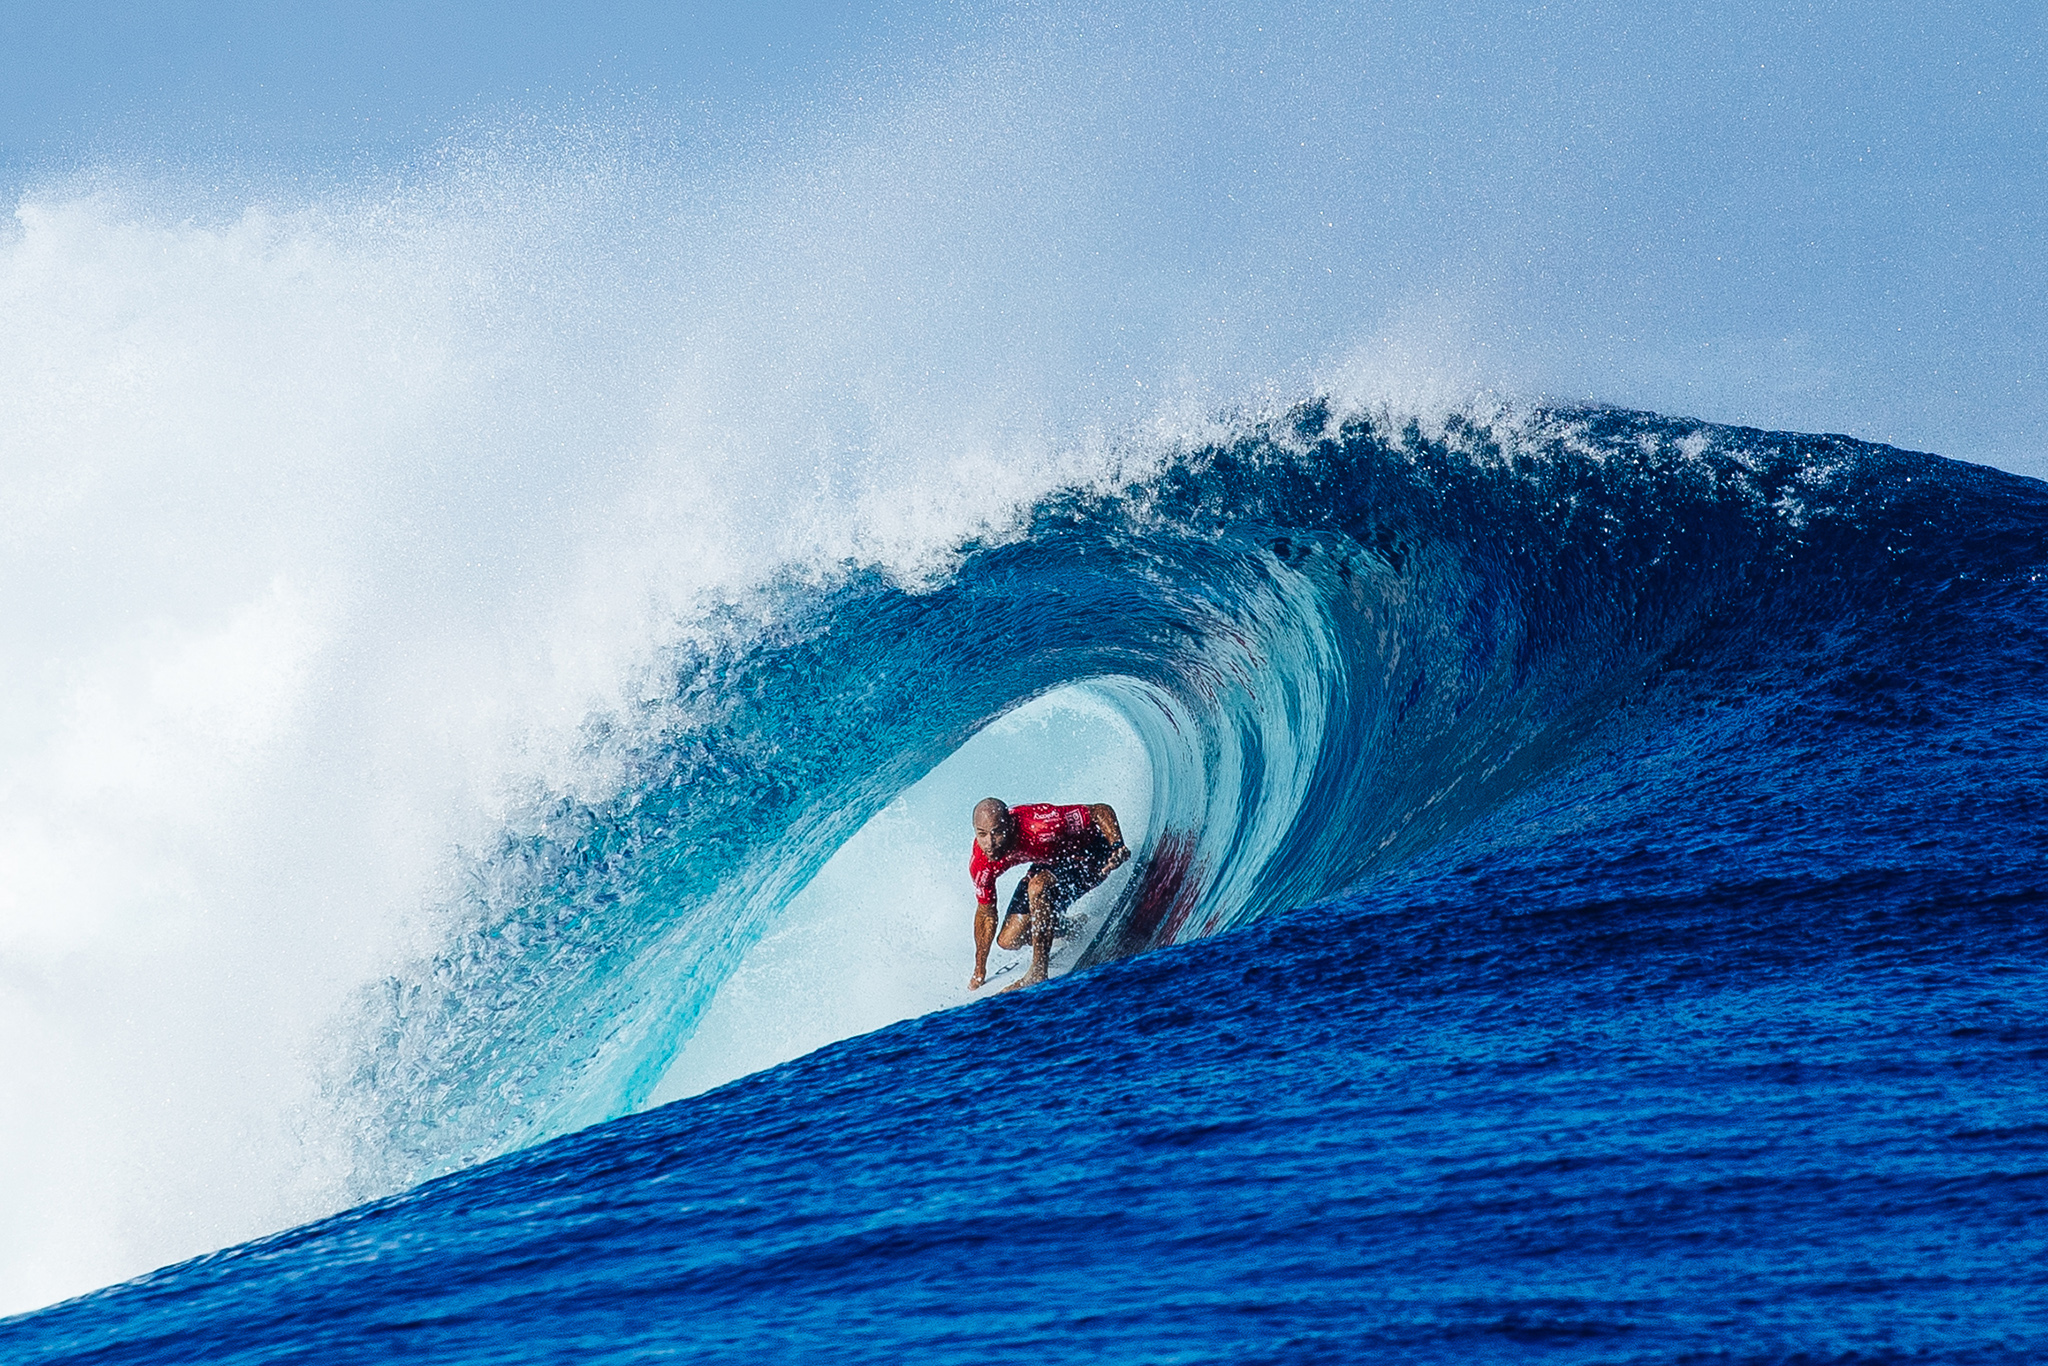 Kelly Slater of the USA (pictured) winning his quarterfinal heat at the Fiji Pro at Cloudbreak on Tavarua on Friday June 17, 2016. PHOTO: WSL/ Sloane SOCIAL: @edsloanephoto @wsl This image is the copyright of  the World Surf League and is provided royalty free for editorial use only, in all media now known or hereafter created. No commercial rights granted. Sale or license of the images is prohibited. This image is a factually accurate rendering of what it depicts and has not been modified or augmented except for standard cropping and toning. ALL RIGHTS RESERVED.